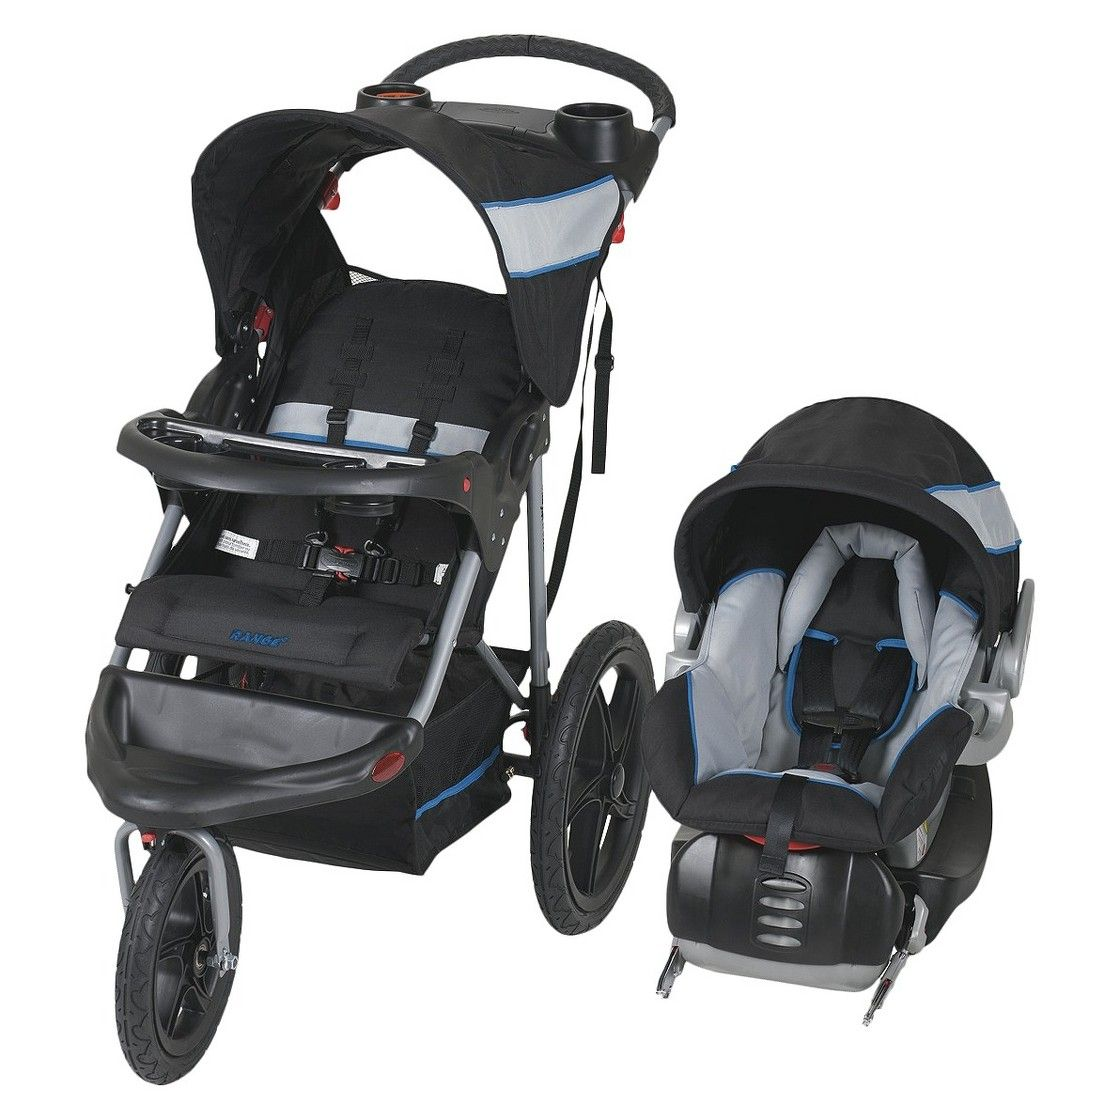 Baby Trend Jogger Travel System (With images) Baby trend